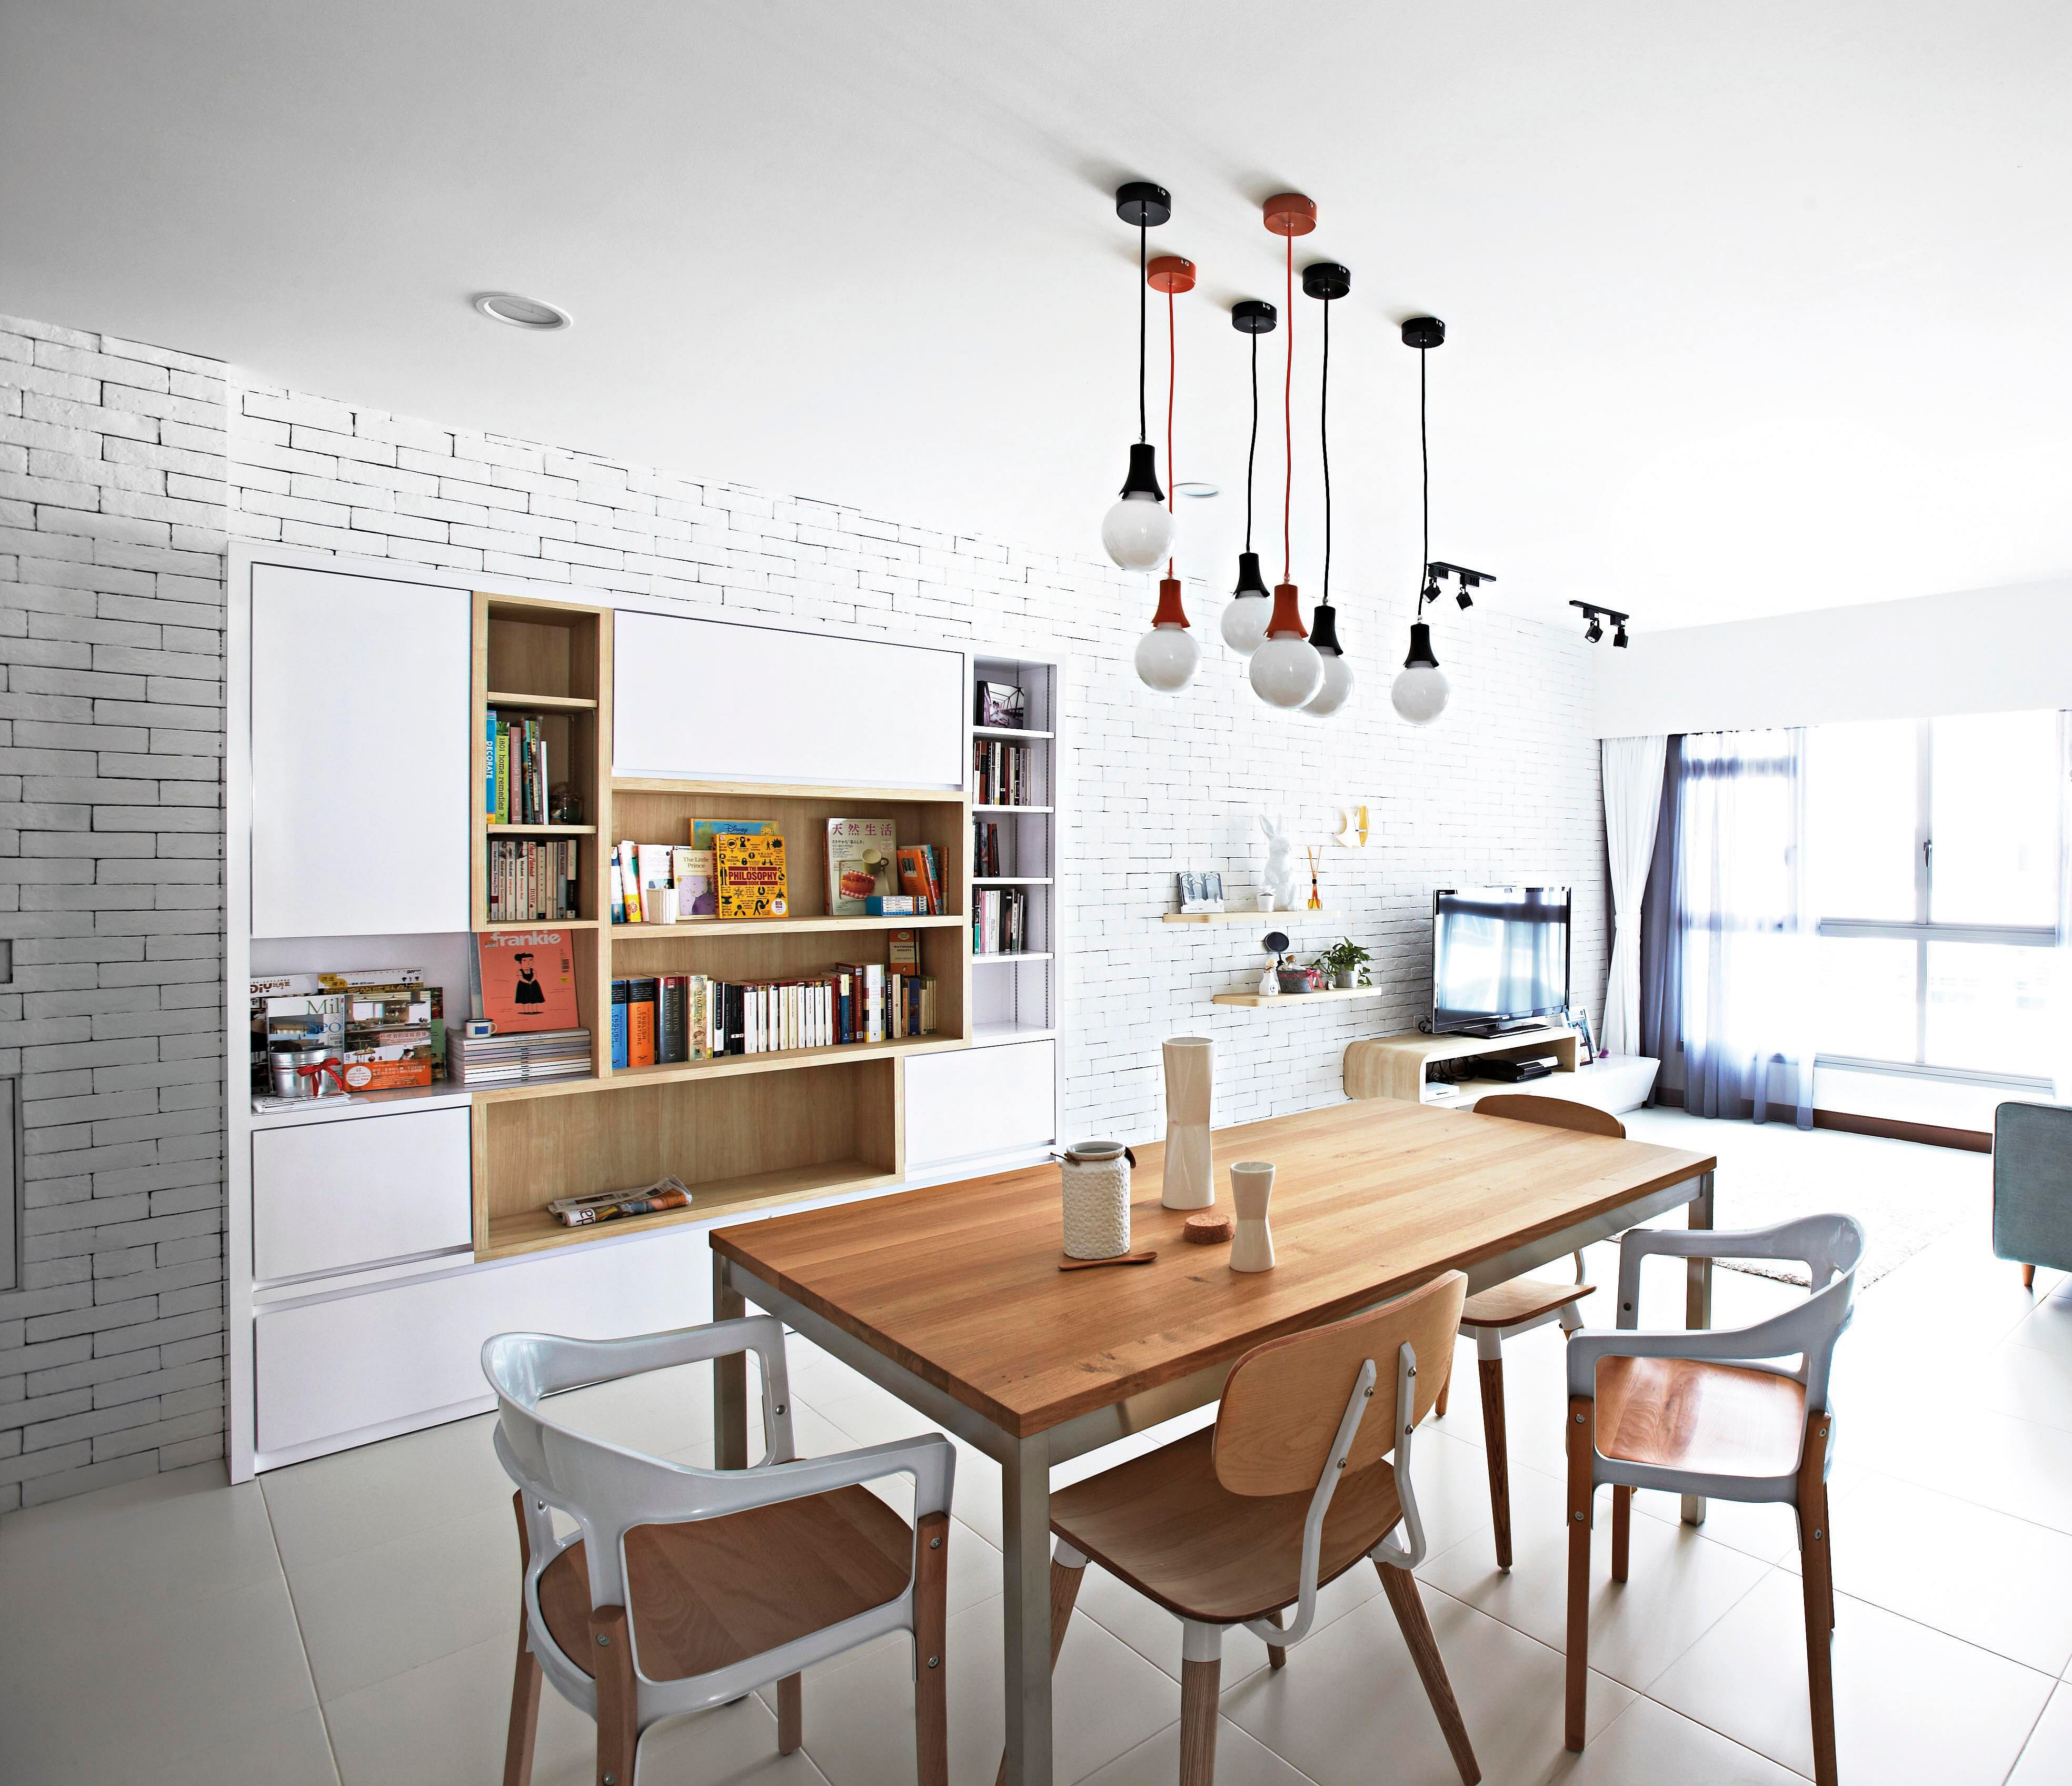 House Tour: Cafe-inspired Scandinavian BTO flat in Punggol title=